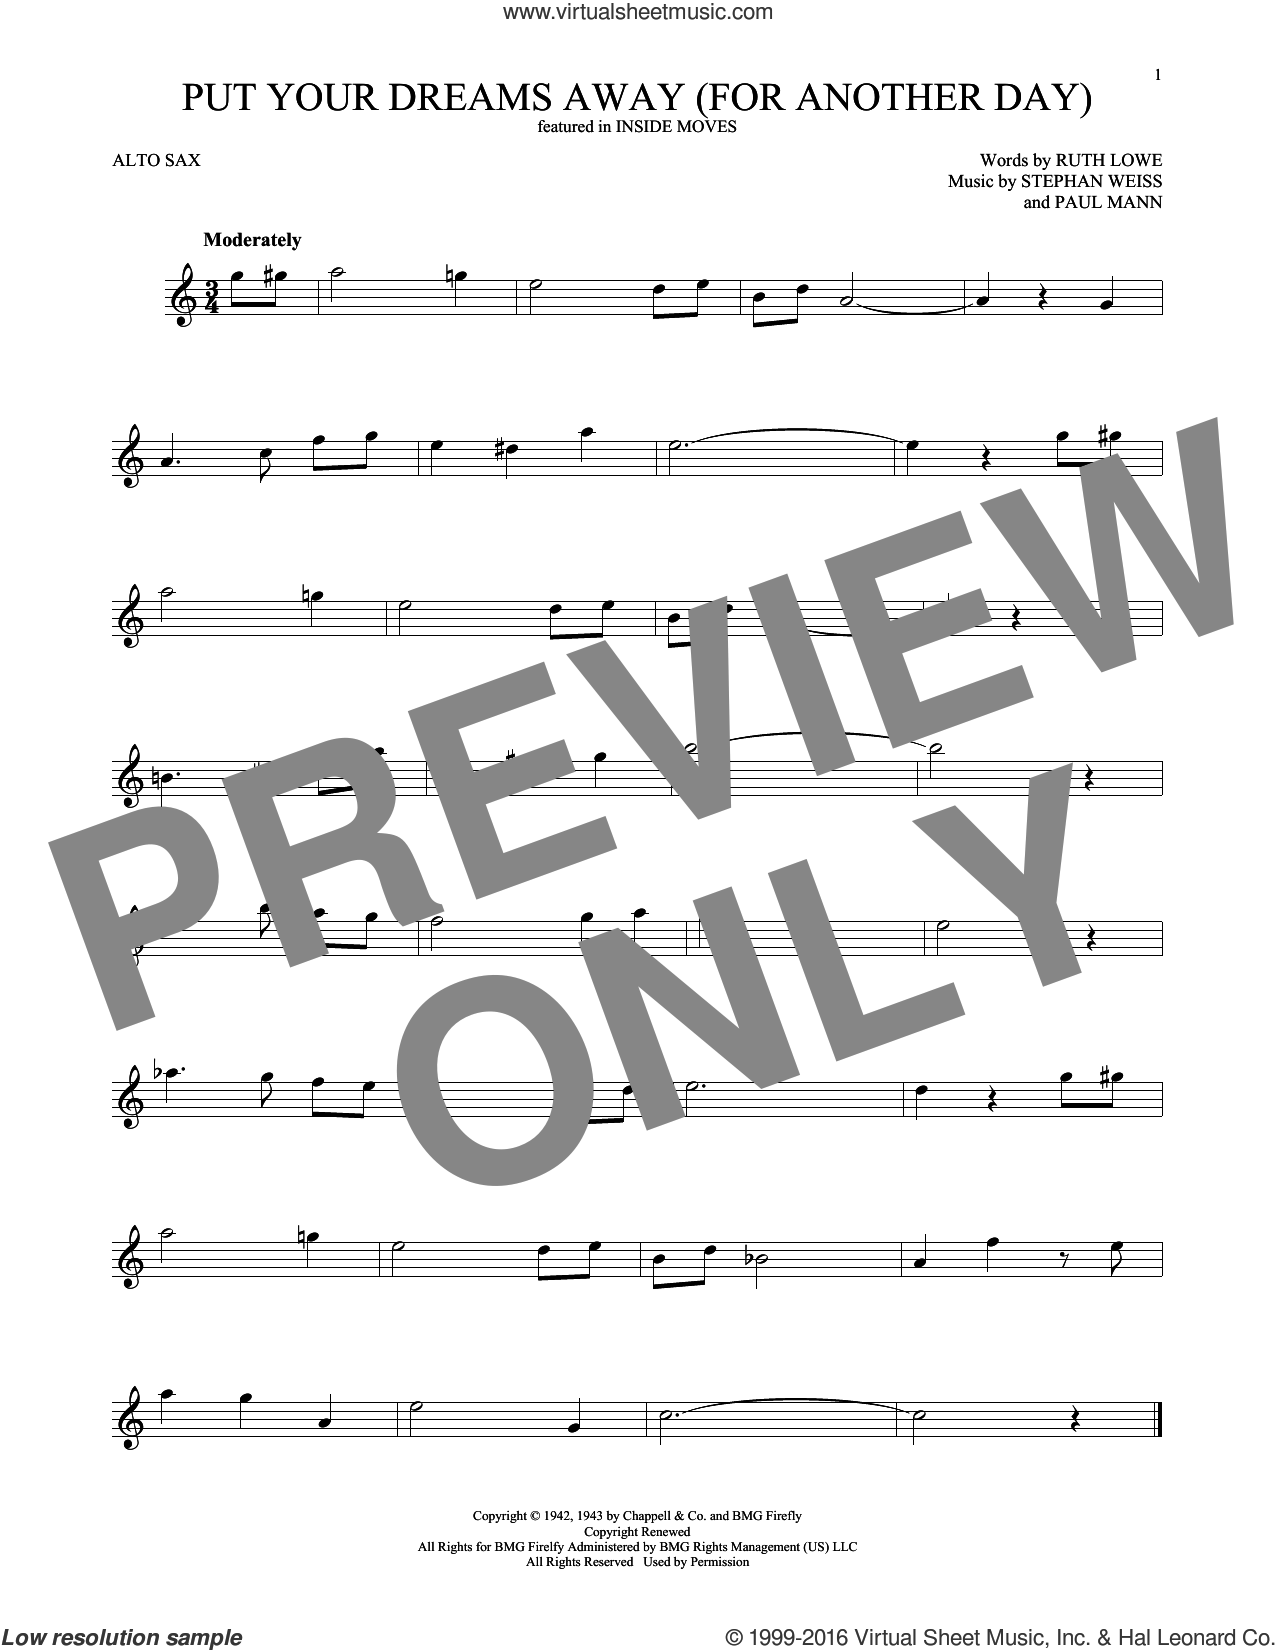 Put Your Dreams Away (For Another Day) sheet music for alto saxophone solo ( Sax) by Frank Sinatra, Paul Mann, Ruth Lowe and Stephen Weiss, intermediate alto saxophone ( Sax)